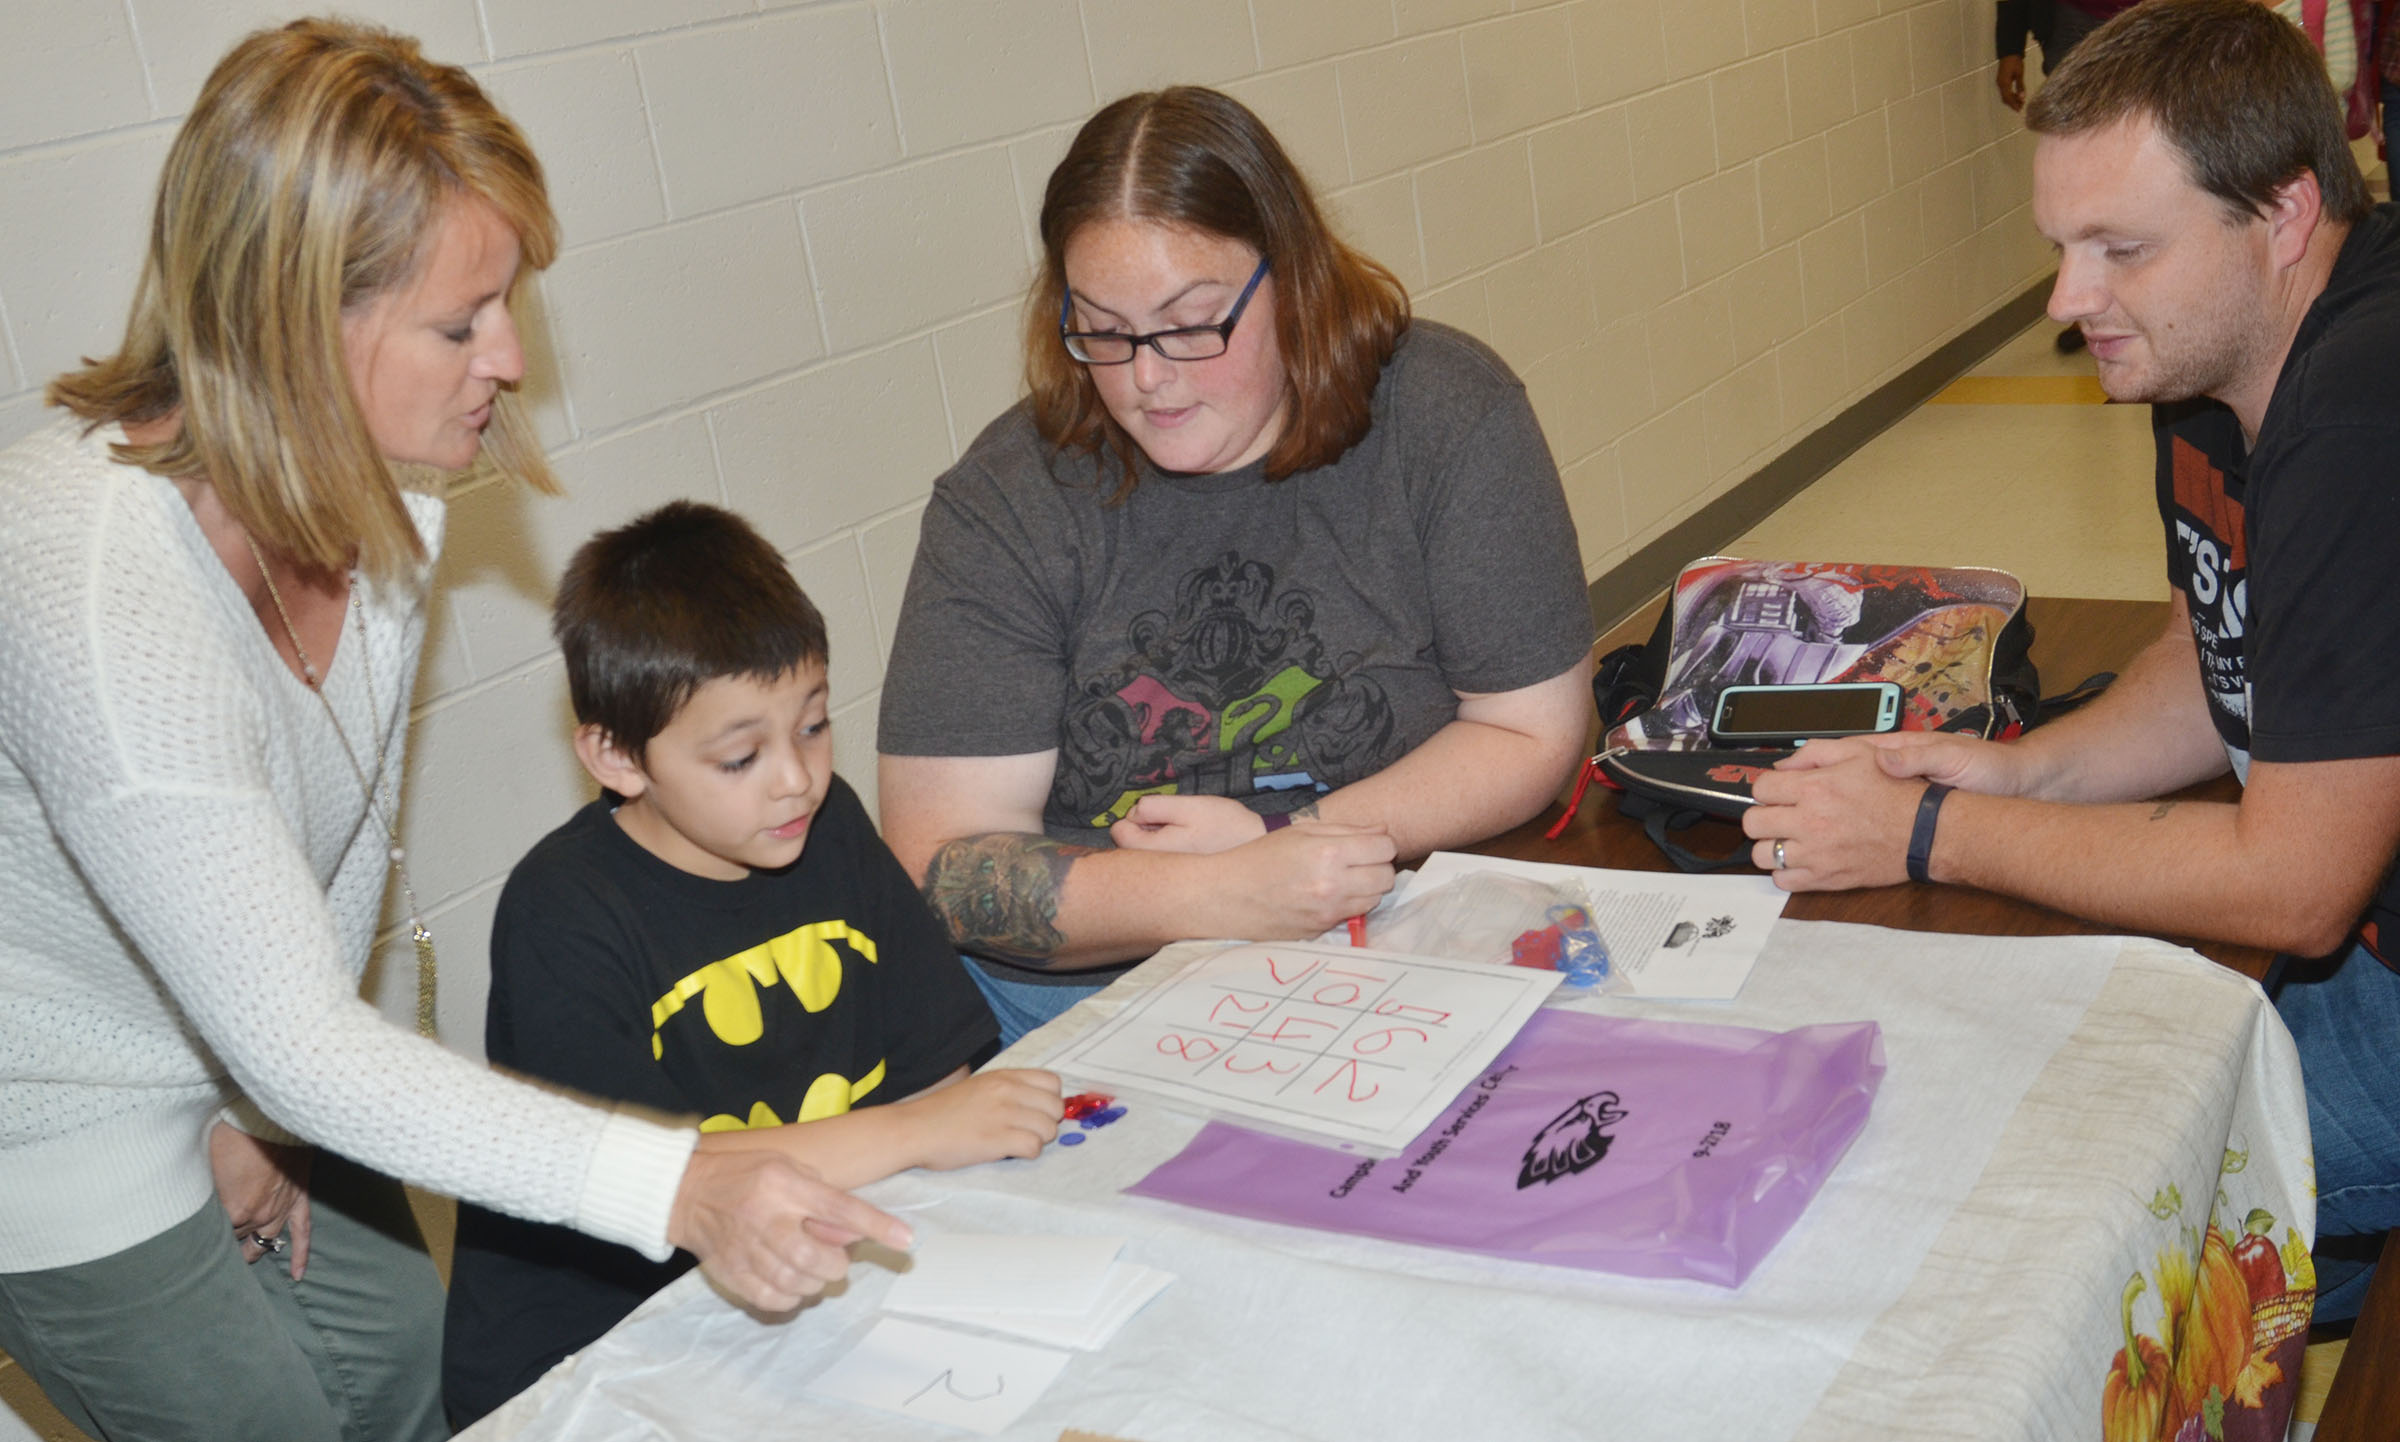 CES kindergartener Keagan Shearer plays a math game with his parents, Addie and Ben, and CES teacher Vanessa Adkins, at left.